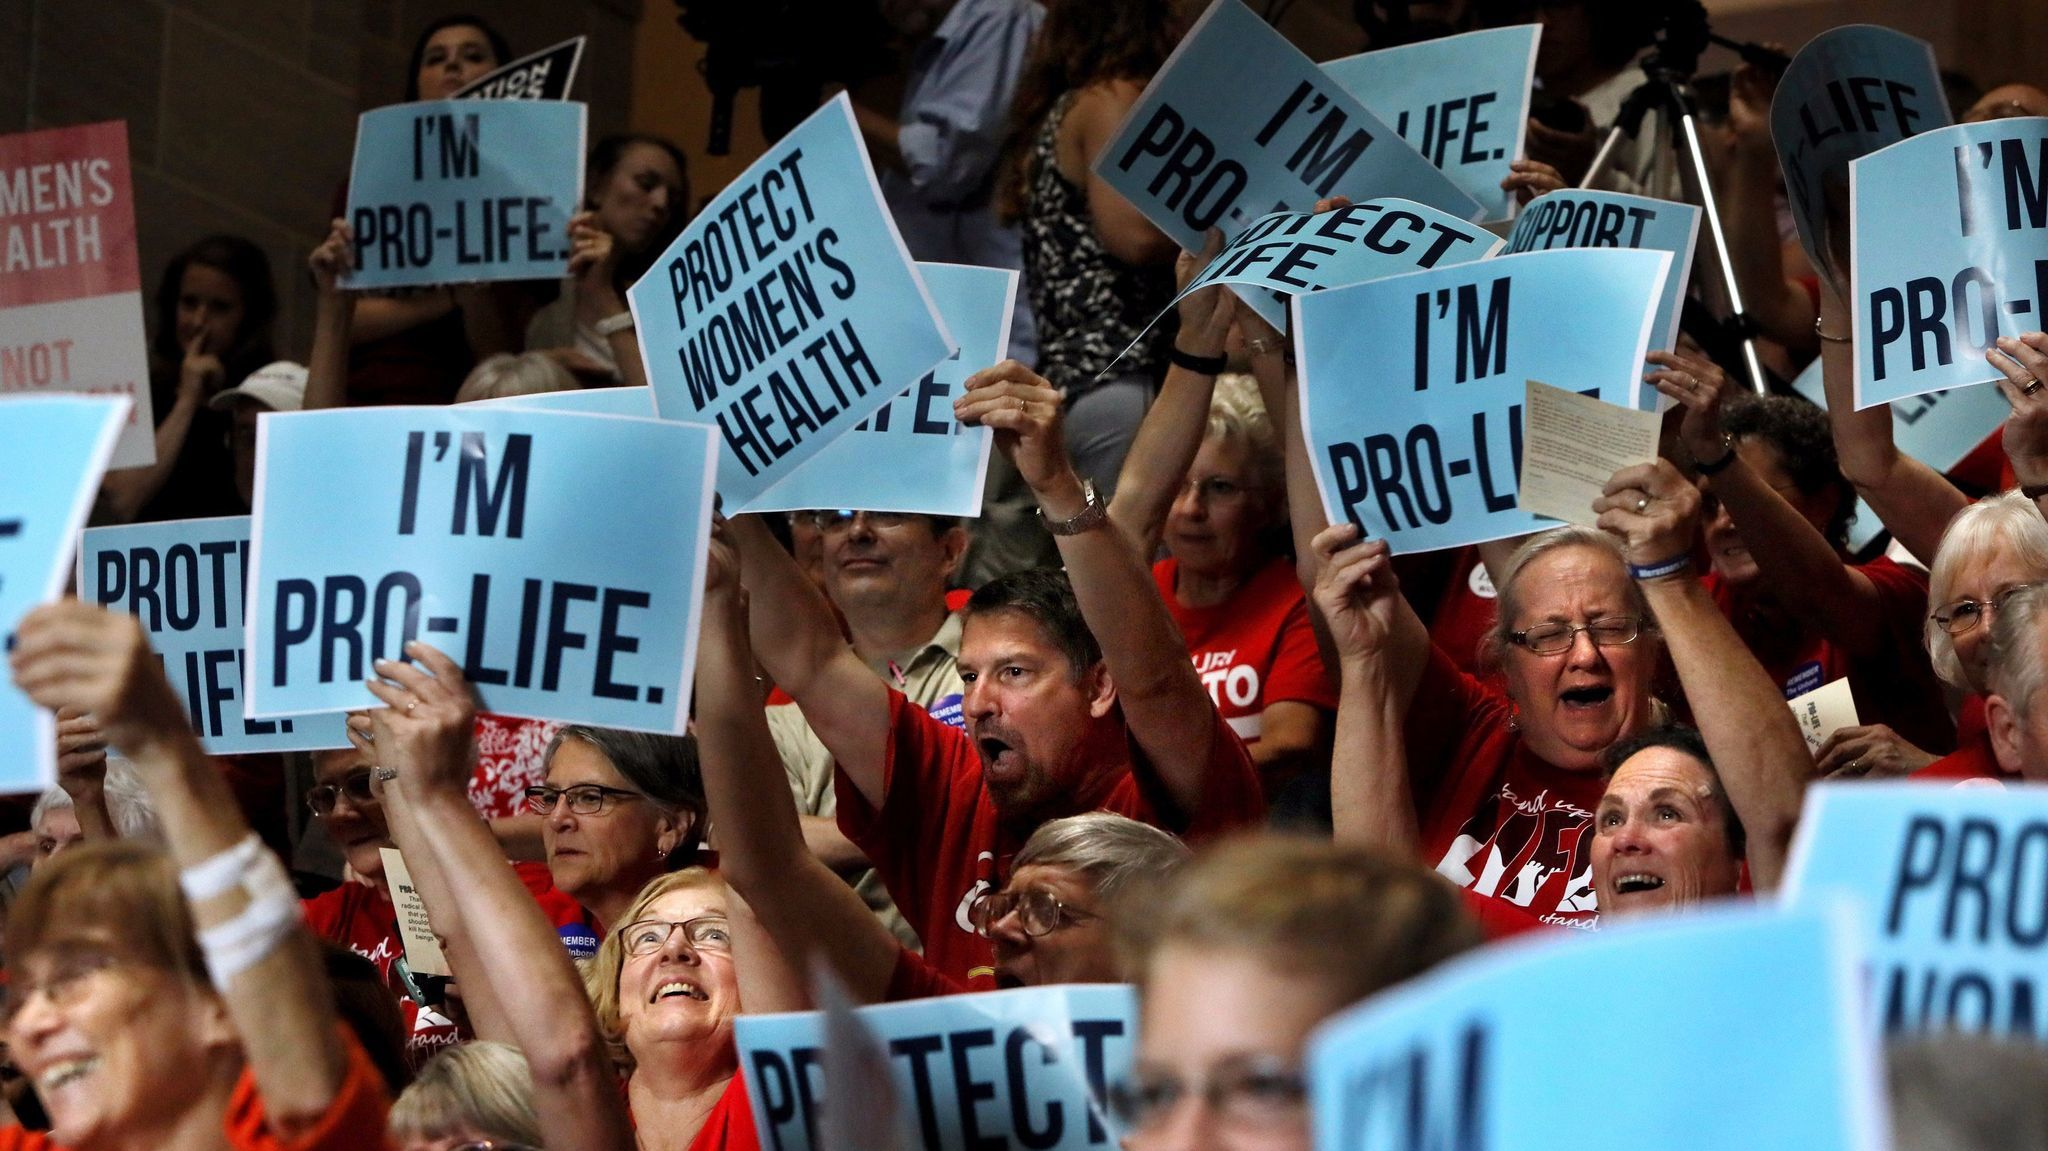 Opponents of abortion cheer during a rally in Jefferson City, Mo., on June 14.